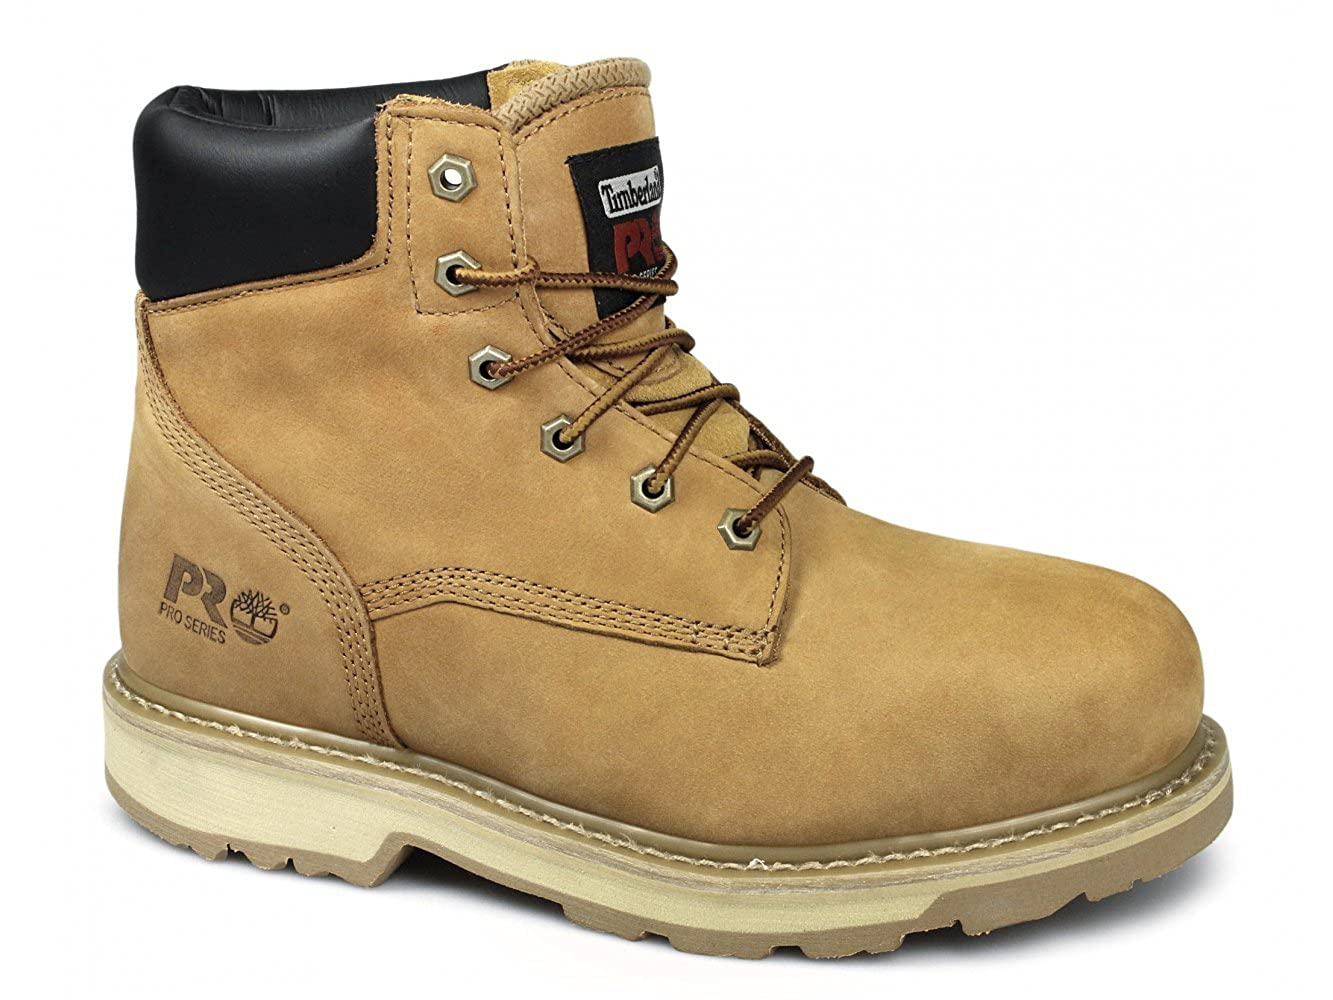 2aafd2f97da Timberland PRO TRADITIONAL Mens Resistant Safety Boots Wheat